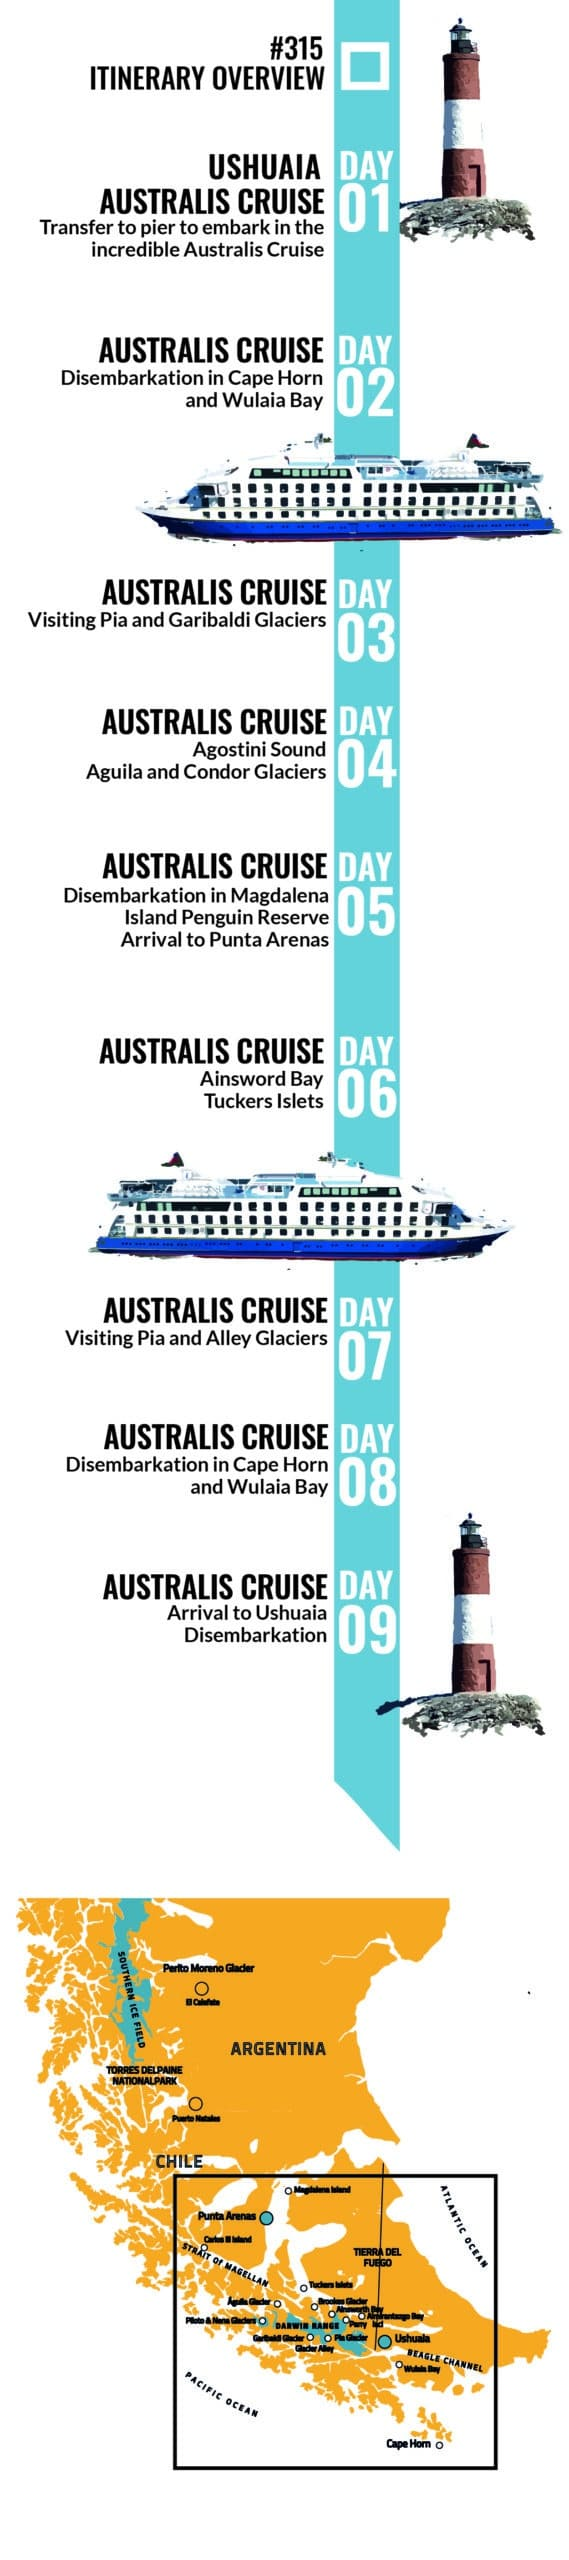 Darwins Route in Australis Cruise -- RipioTurismo Incoming Tour Operator for South America